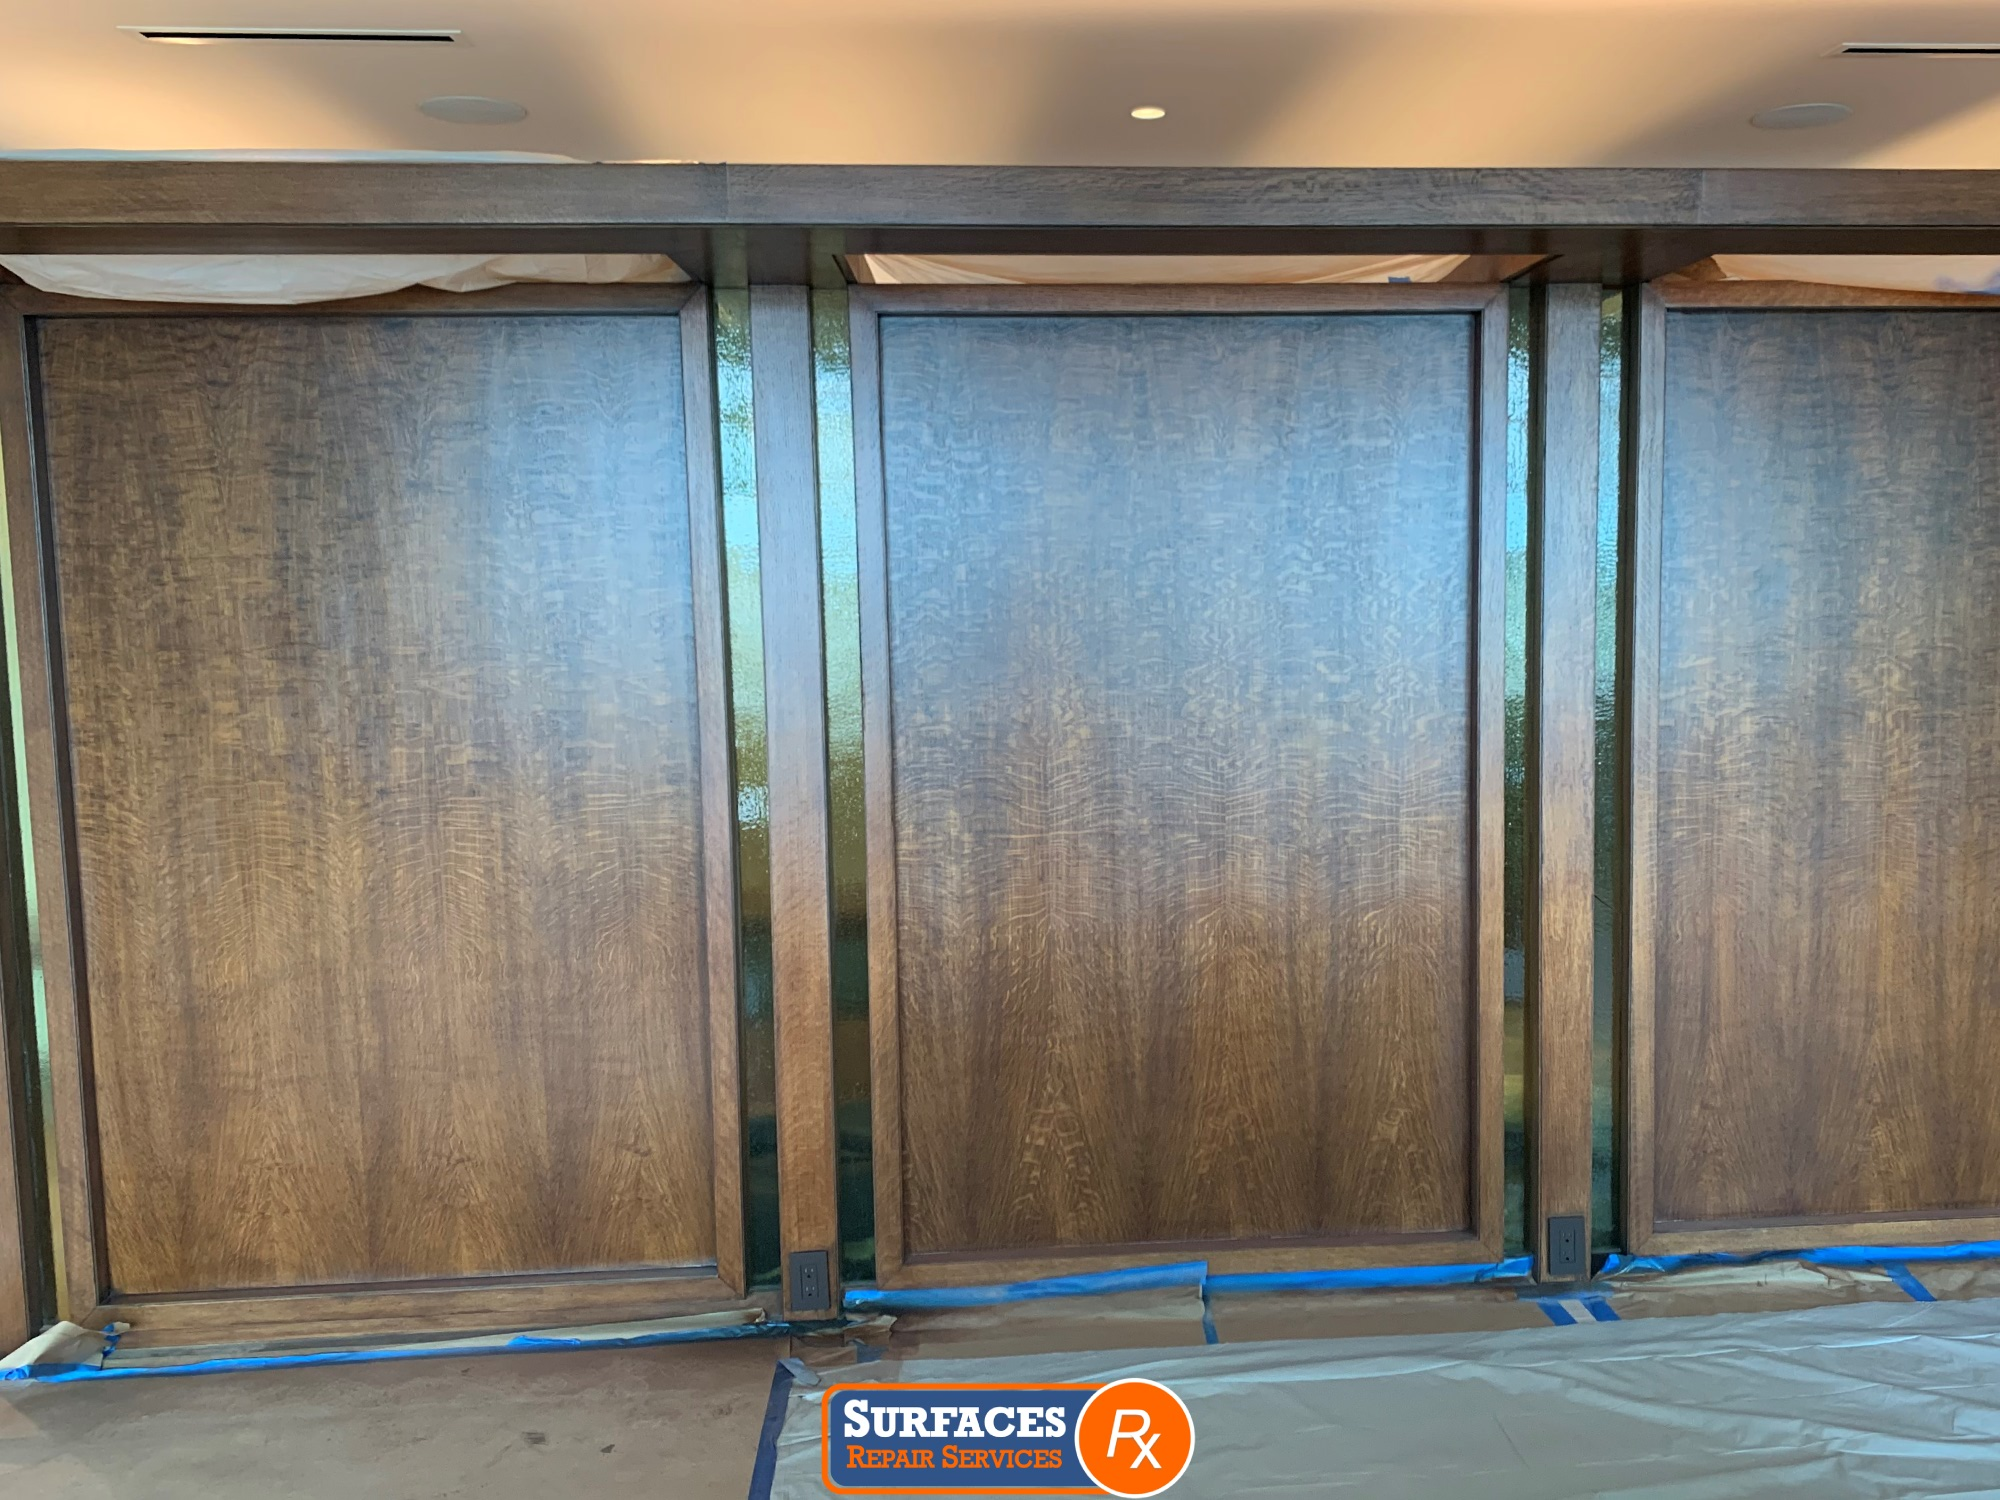 3525 Turtle Creek High-Rise Condo Millwork After Refinishing by Surfaces Rx Centered